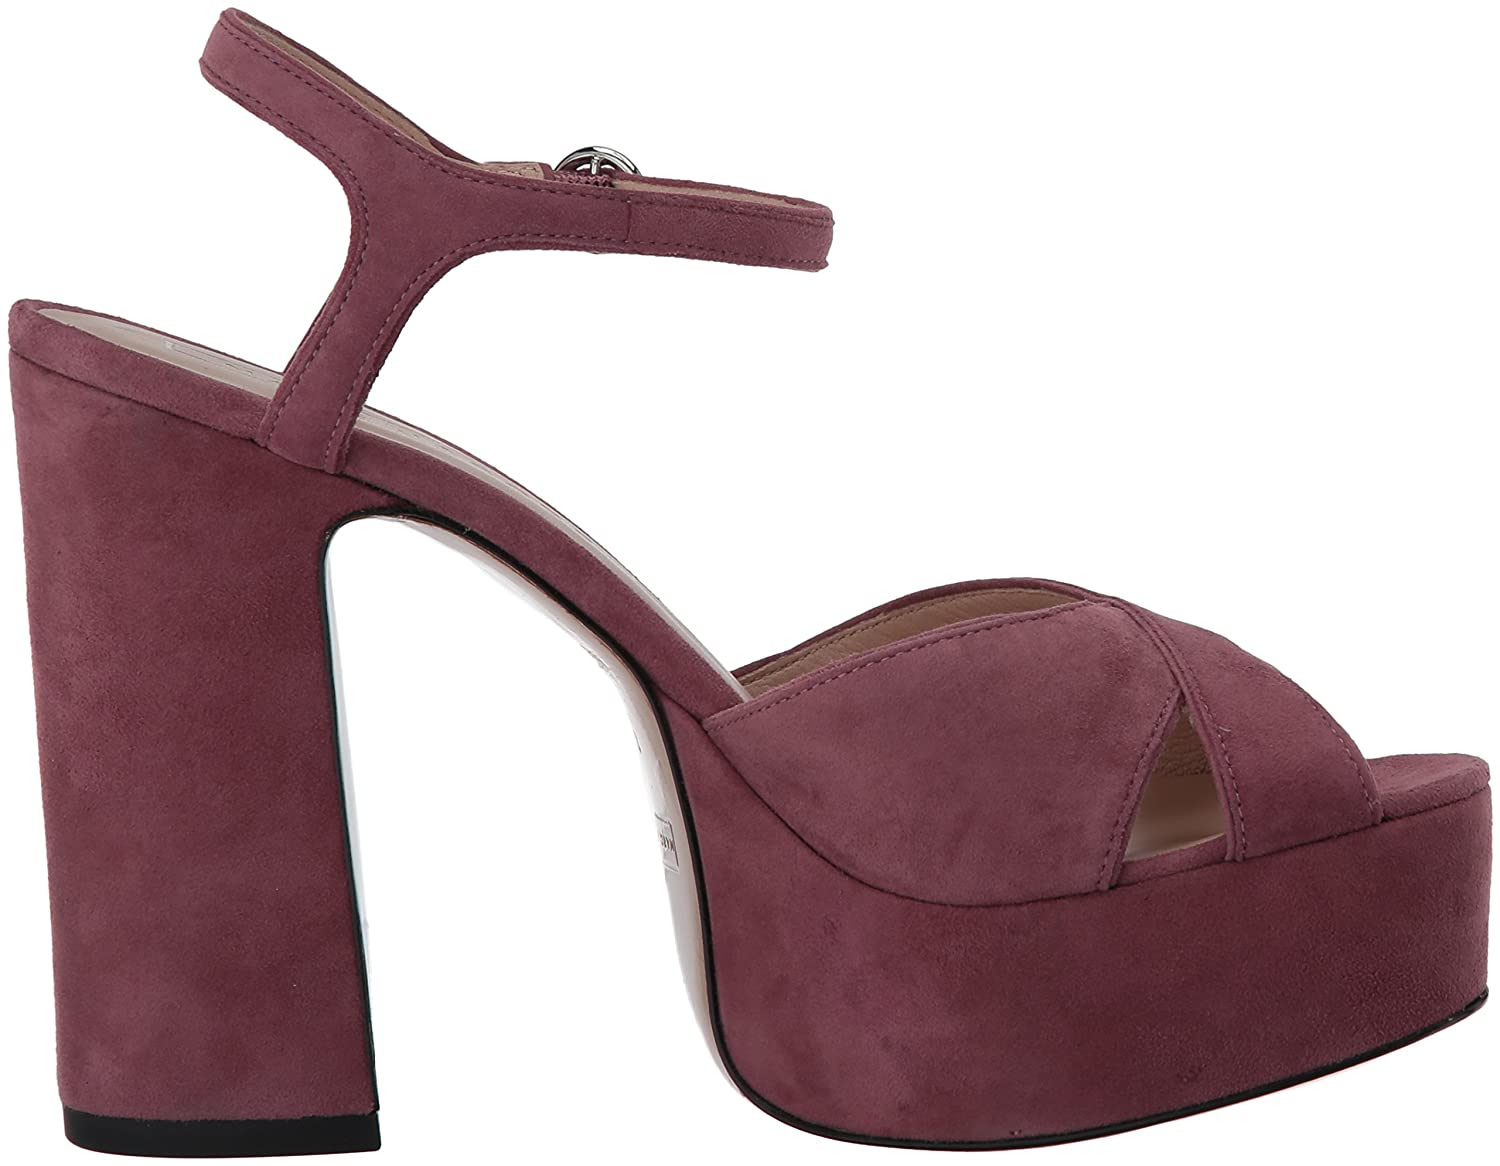 e1a53b8dd7de6 Amazon.com  Marc Jacobs Women s Lust Platform Sandal  Shoes